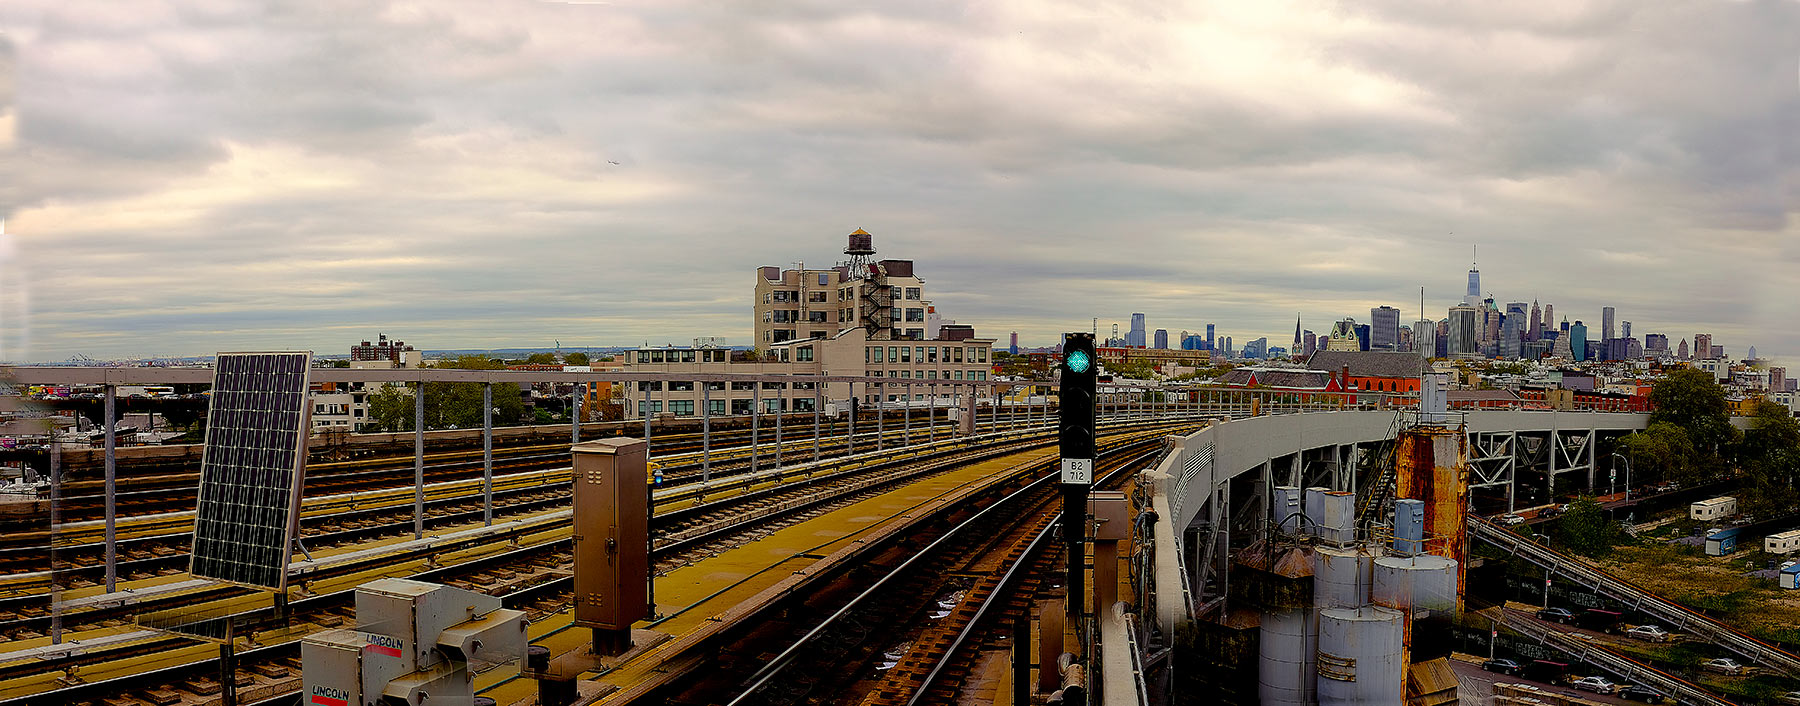 panoramic-of-Smith-and-9th-train-station-over-looking-NYC